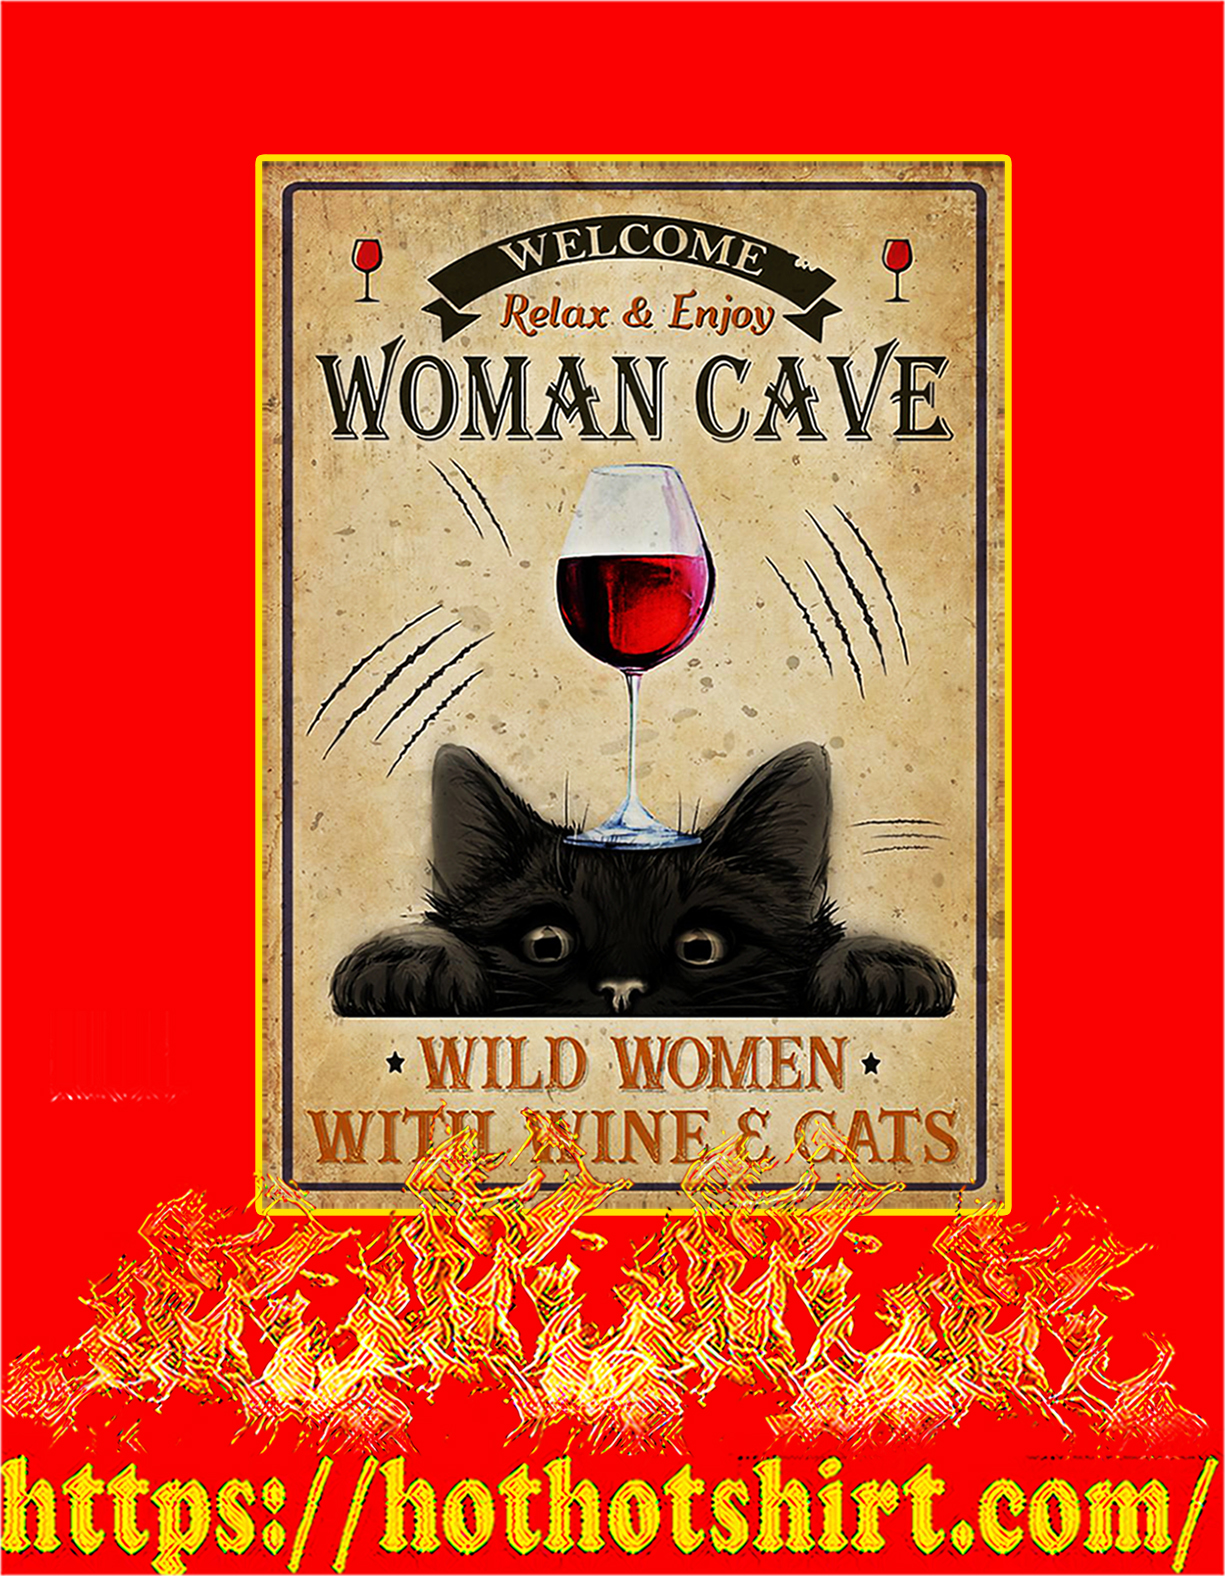 Wine and cats welcome relax and enjoy woman cave poster - A4